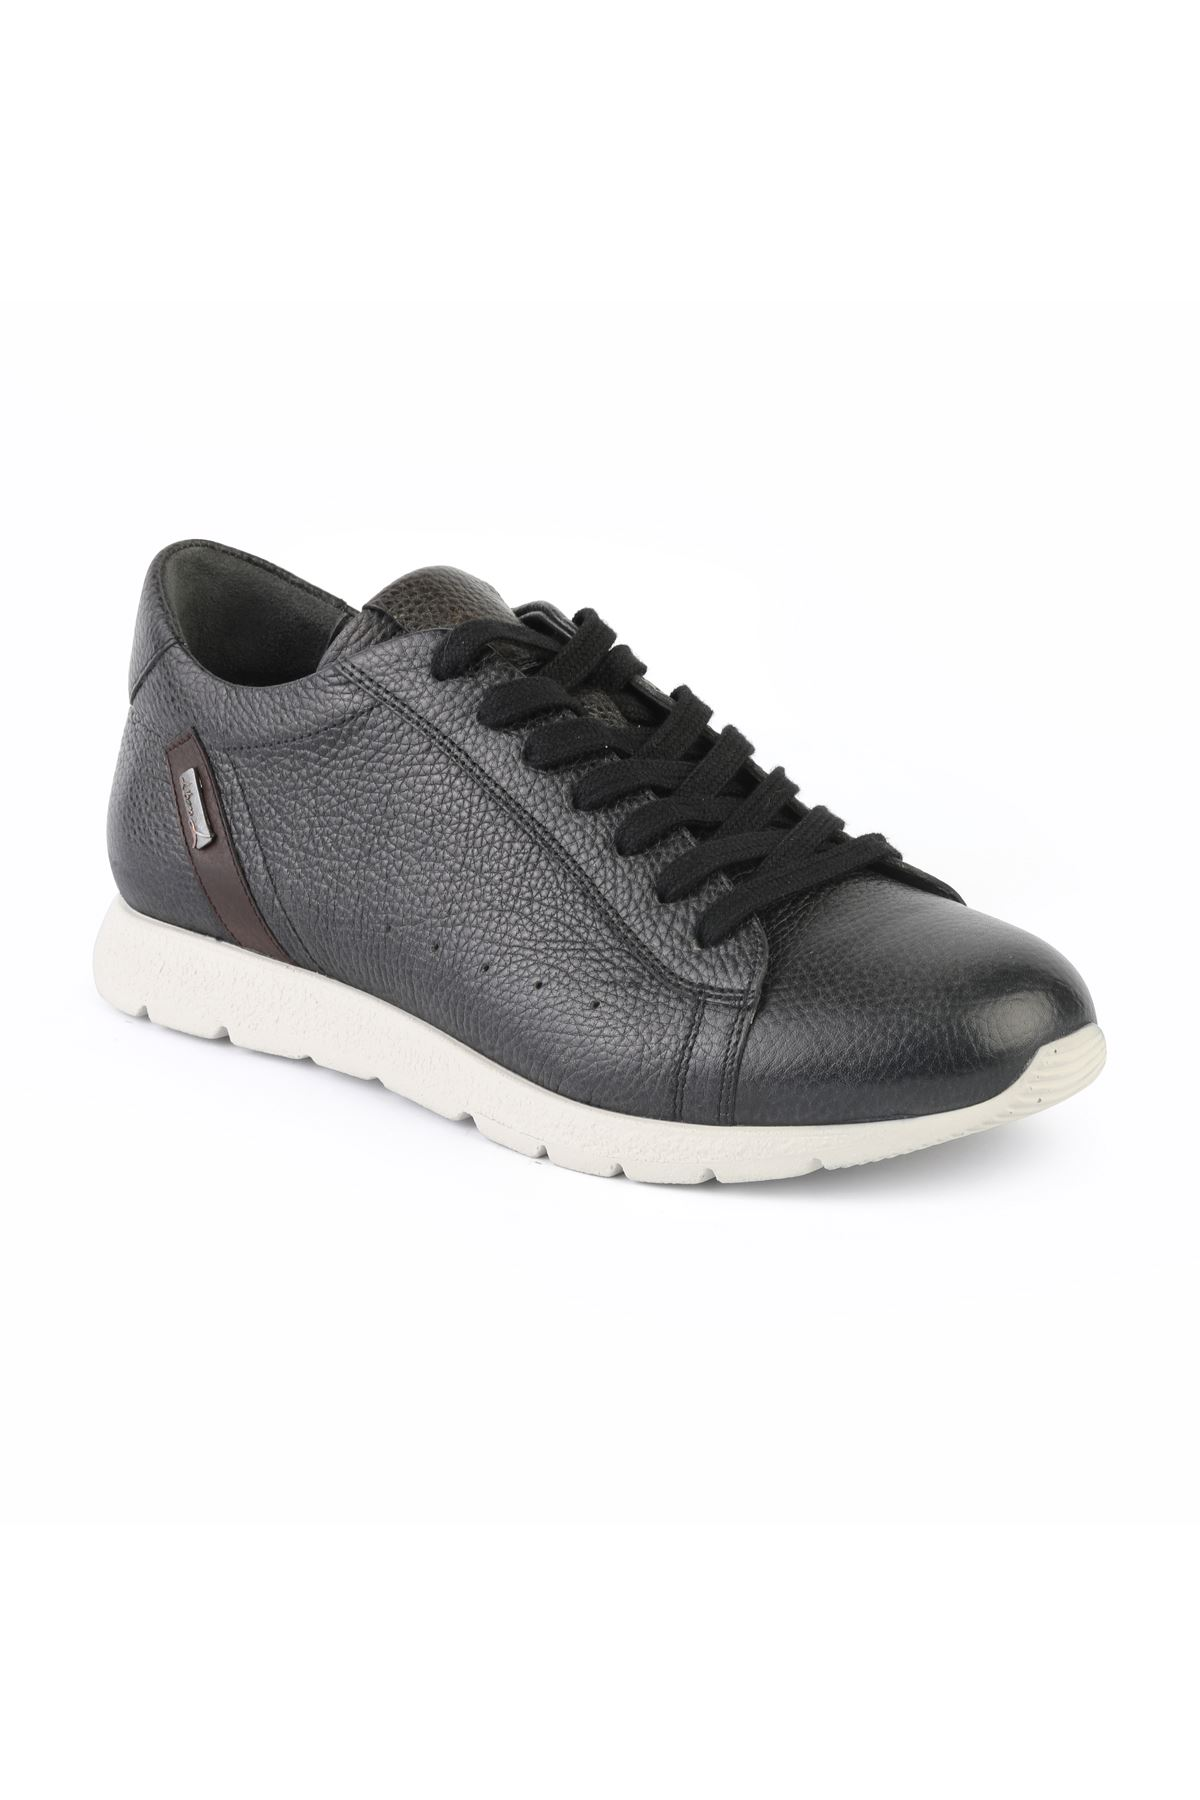 Libero T1171 Black Casual Sports Shoes